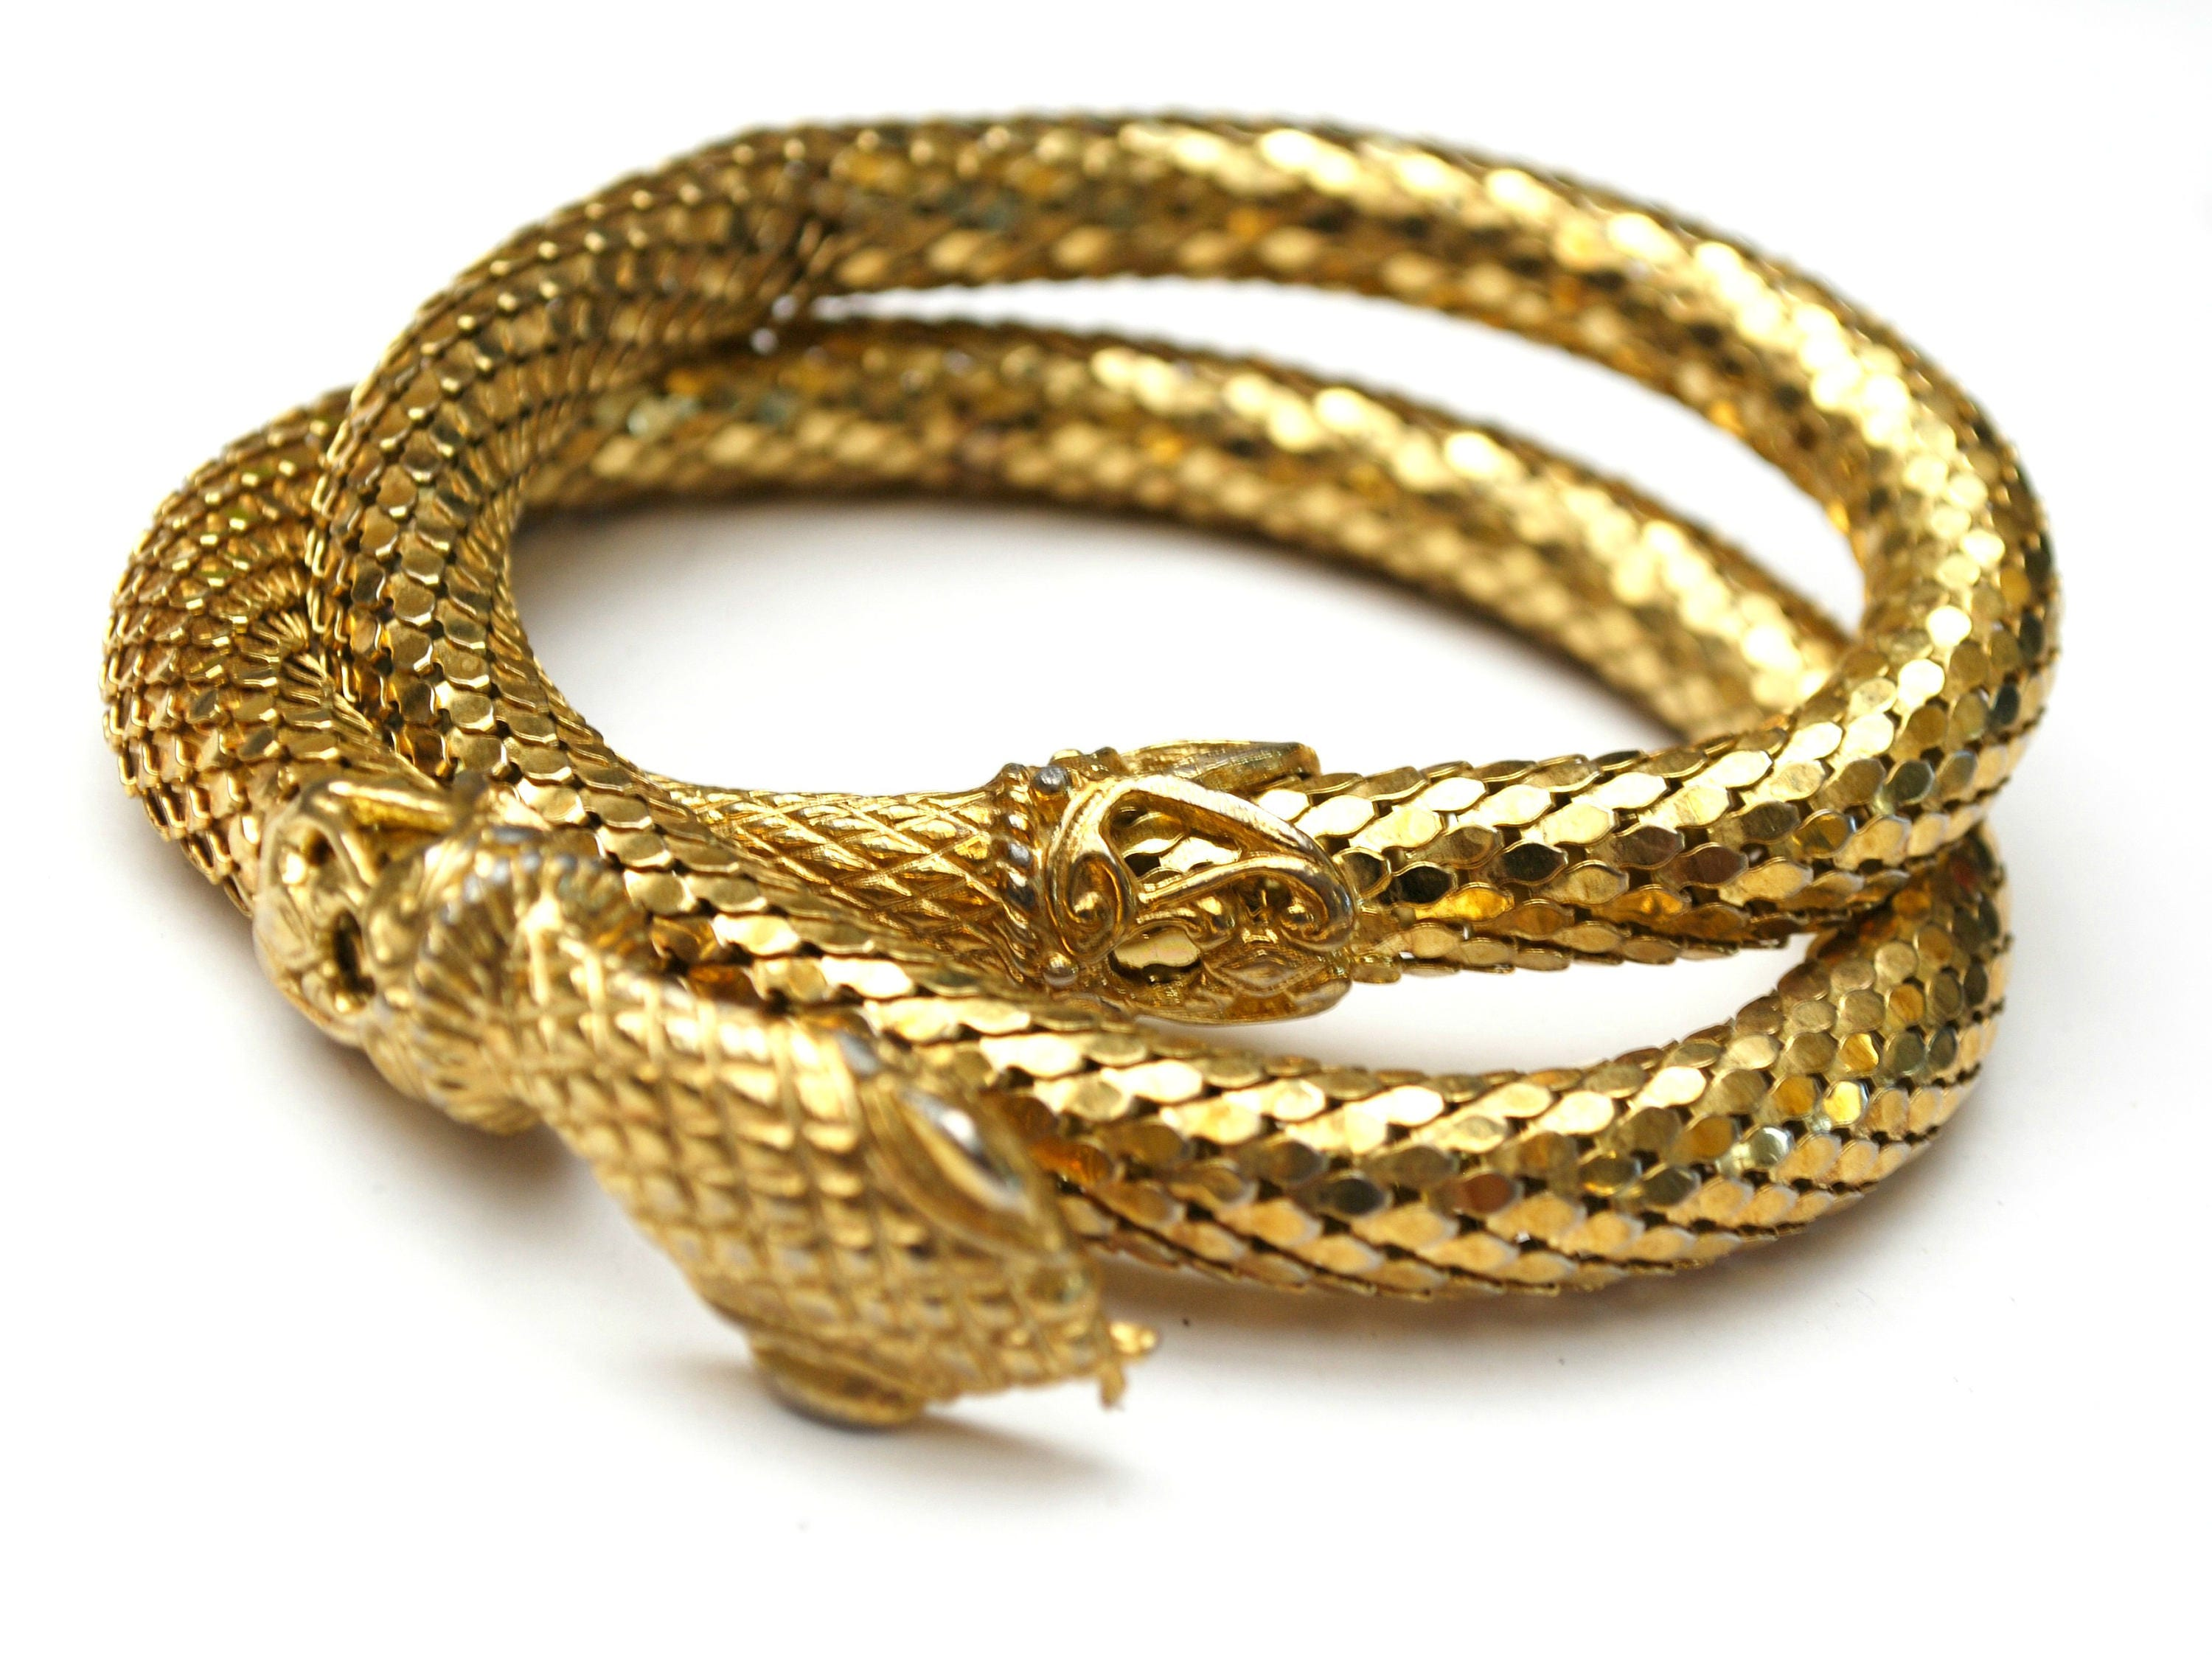 b chain click bracelet thumbnails link itm mens yellow gold large to figaro solid enlarge real